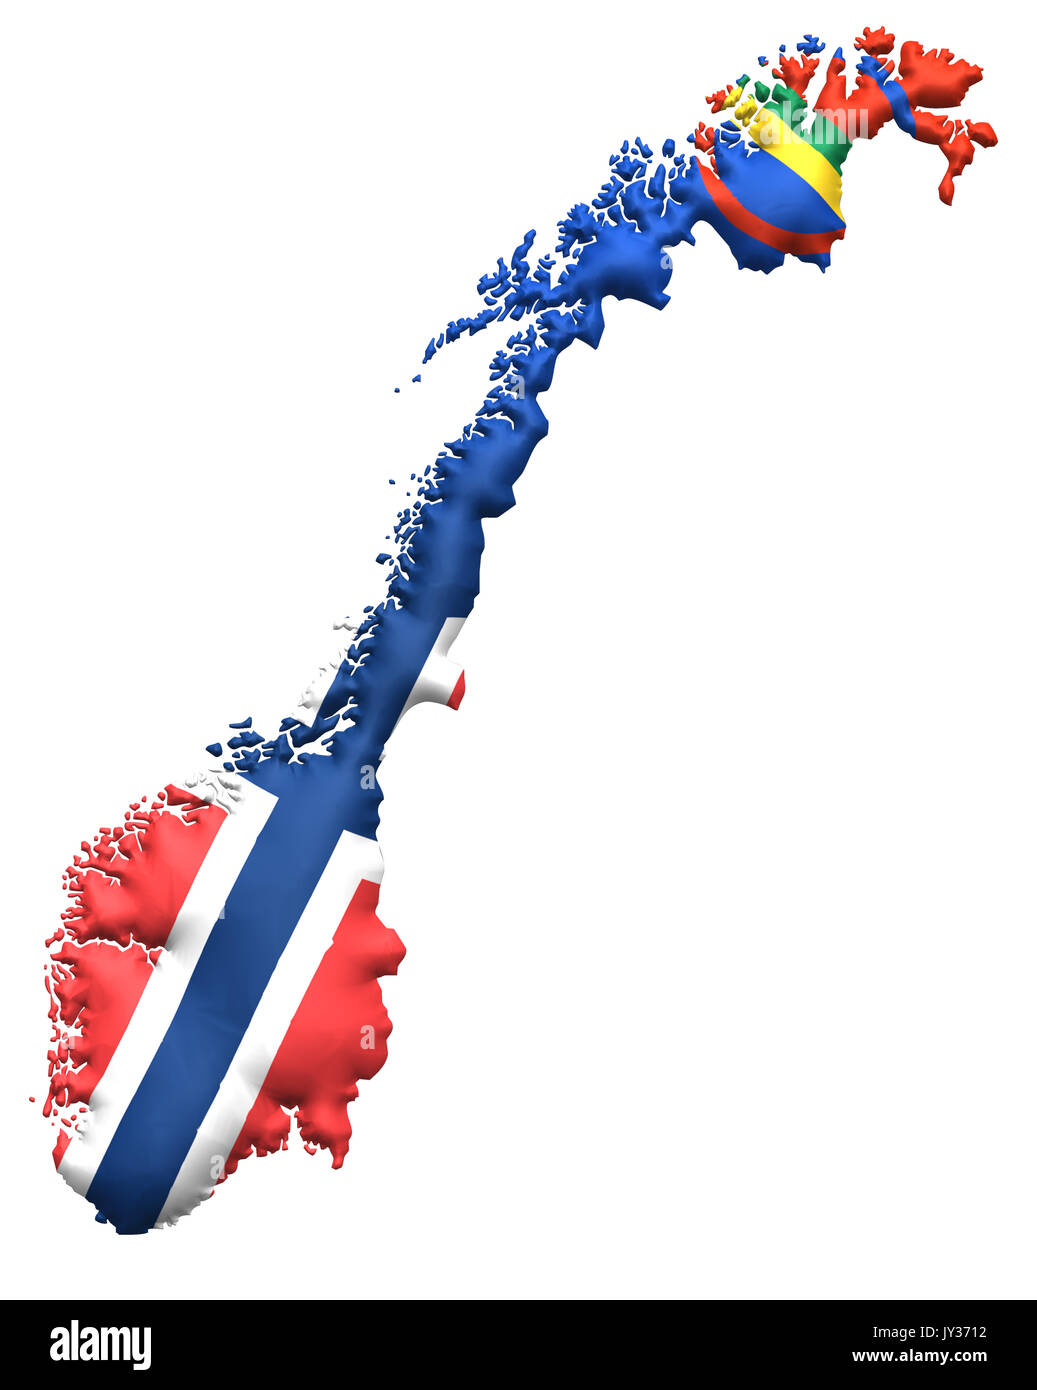 www kart norge Norway Norge flag flagg map kart Stock Photo: 154350030   Alamy www kart norge